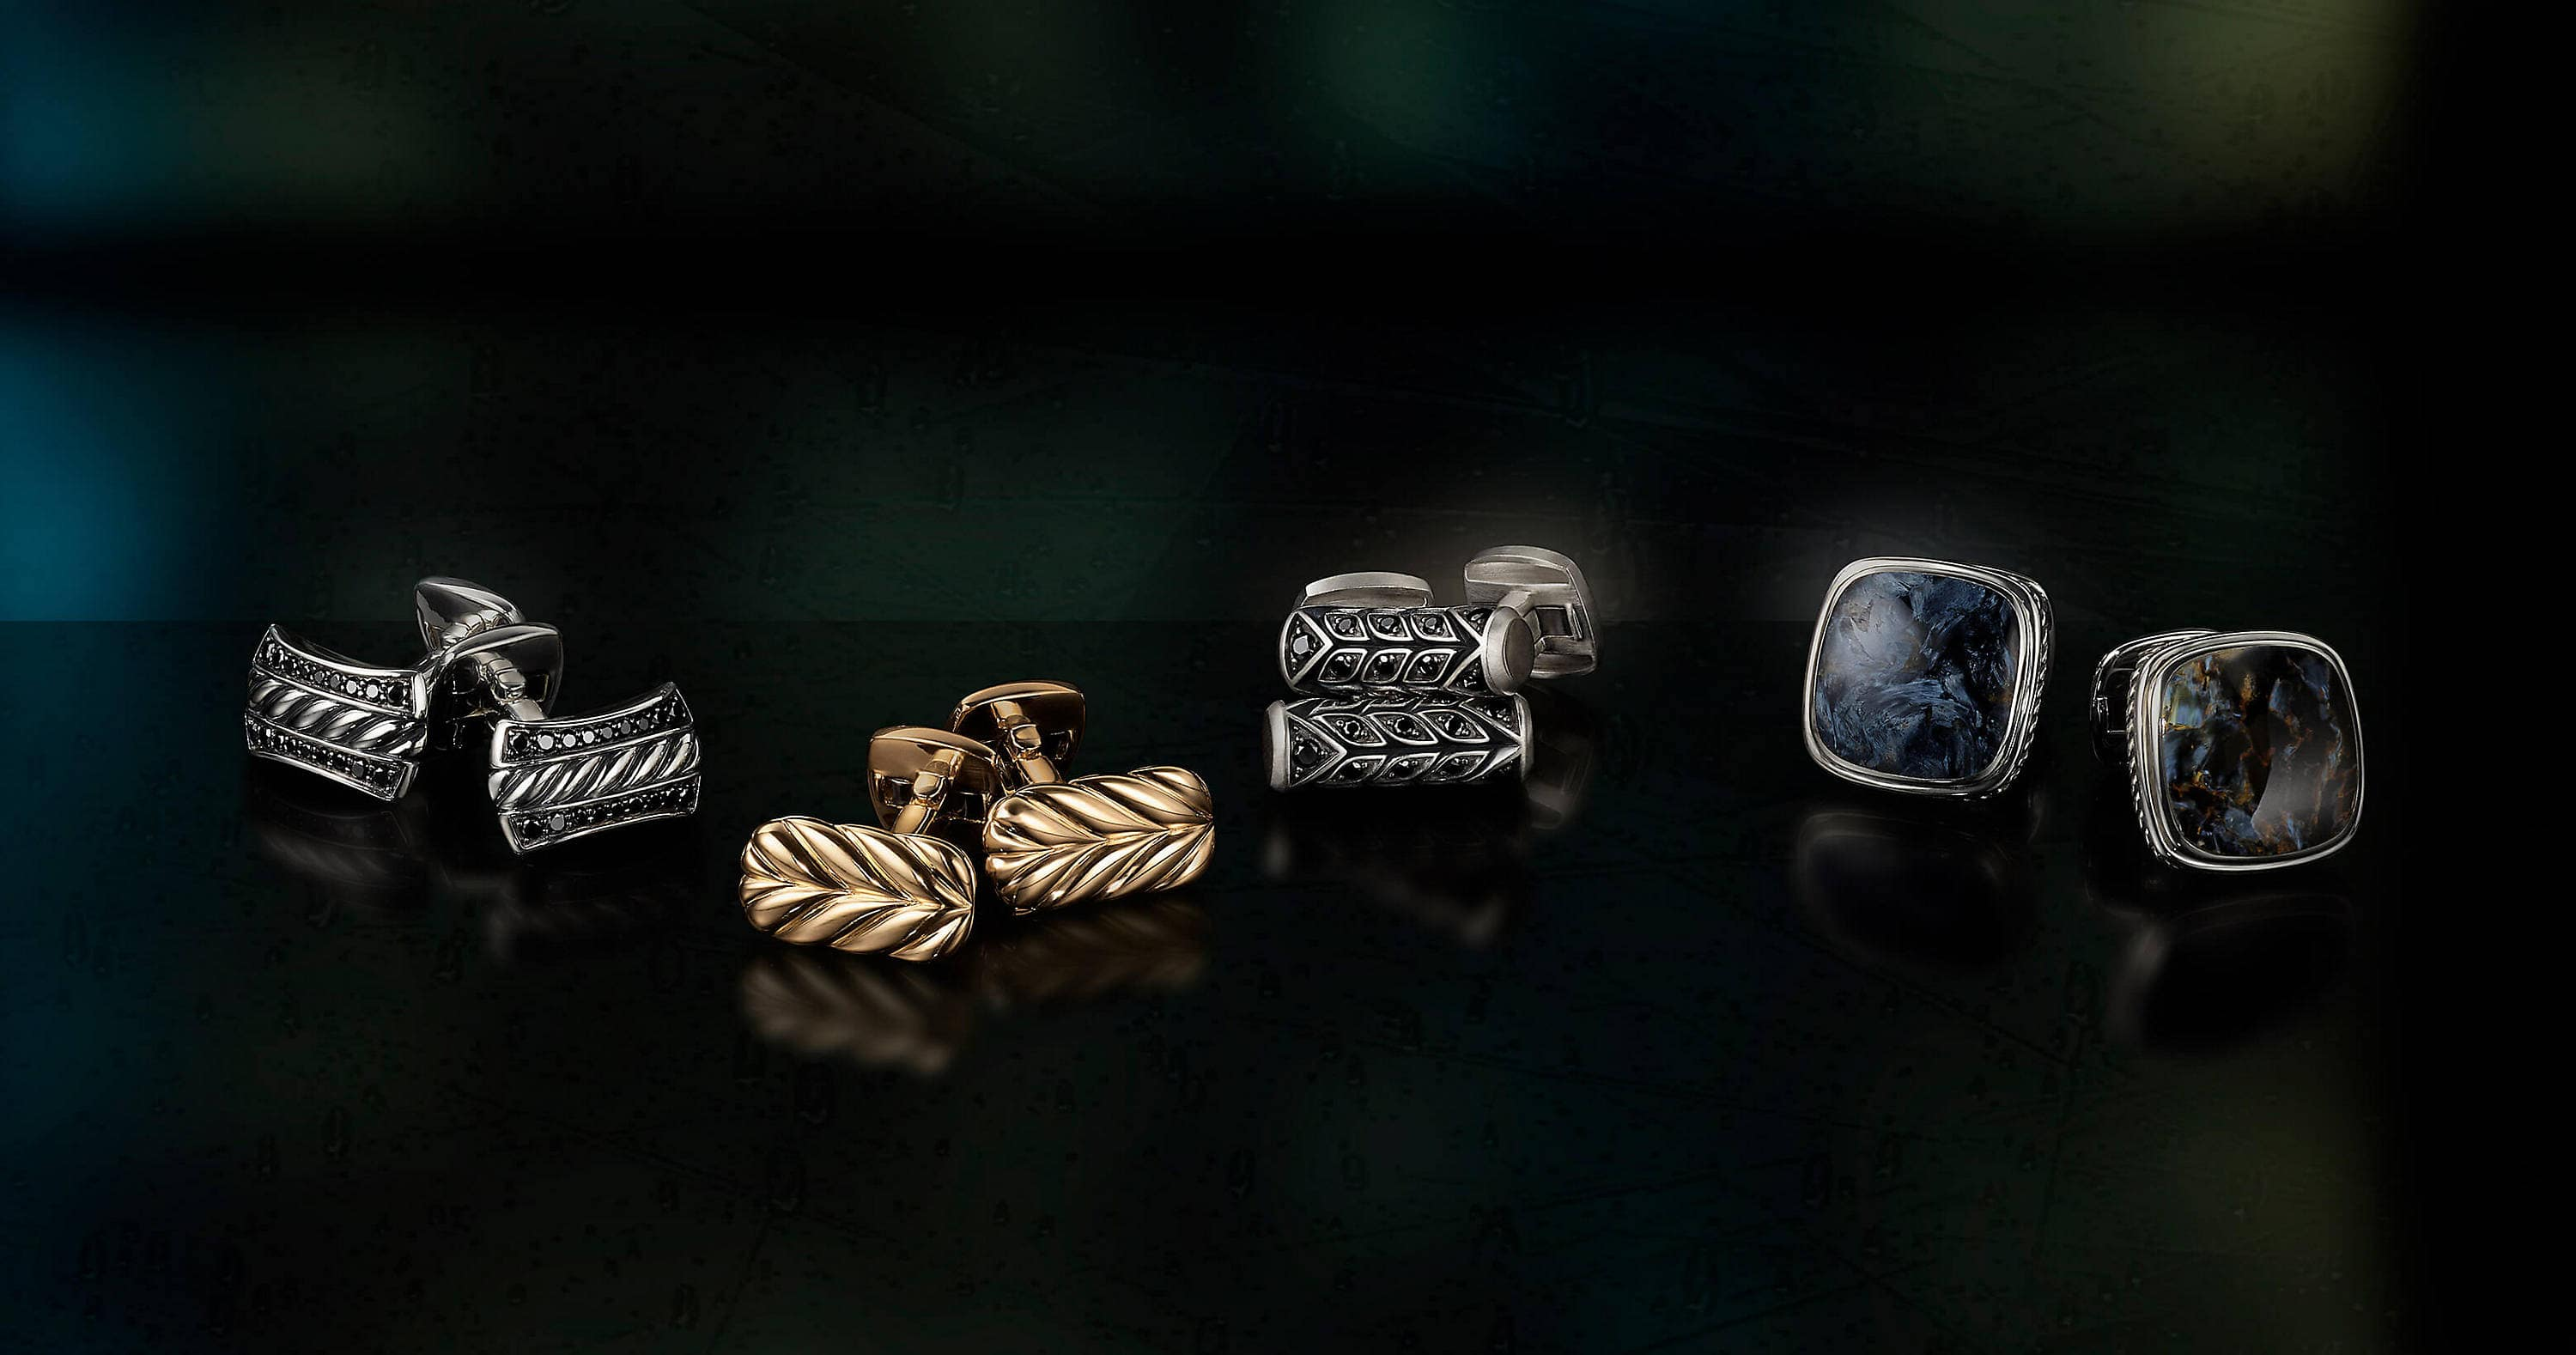 A color photograph shows four pairs of David Yurman men's cufflinks from the Cable, Chevron and Exotic Stone collections scattered on a black reflective surface with a colorful stained glass panel illuminated behind them. The men's accessories are crafted from sterling silver with pavé black diamonds, 18K yellow gold or sterling silver with pietersite.